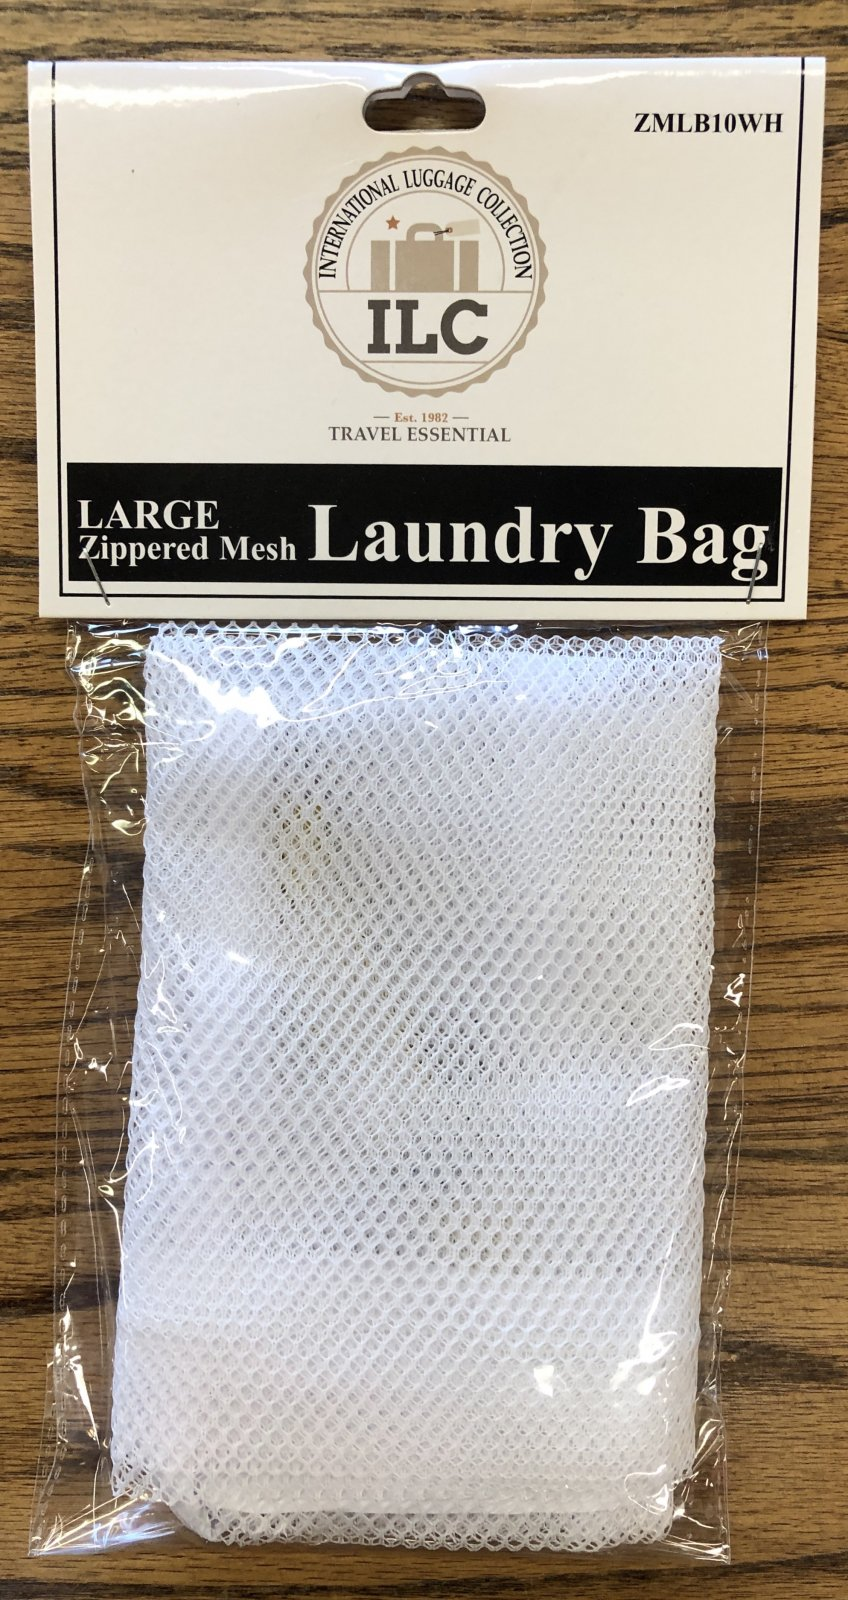 Large zippered mesh Laundry bag ZLB10BK by ILC